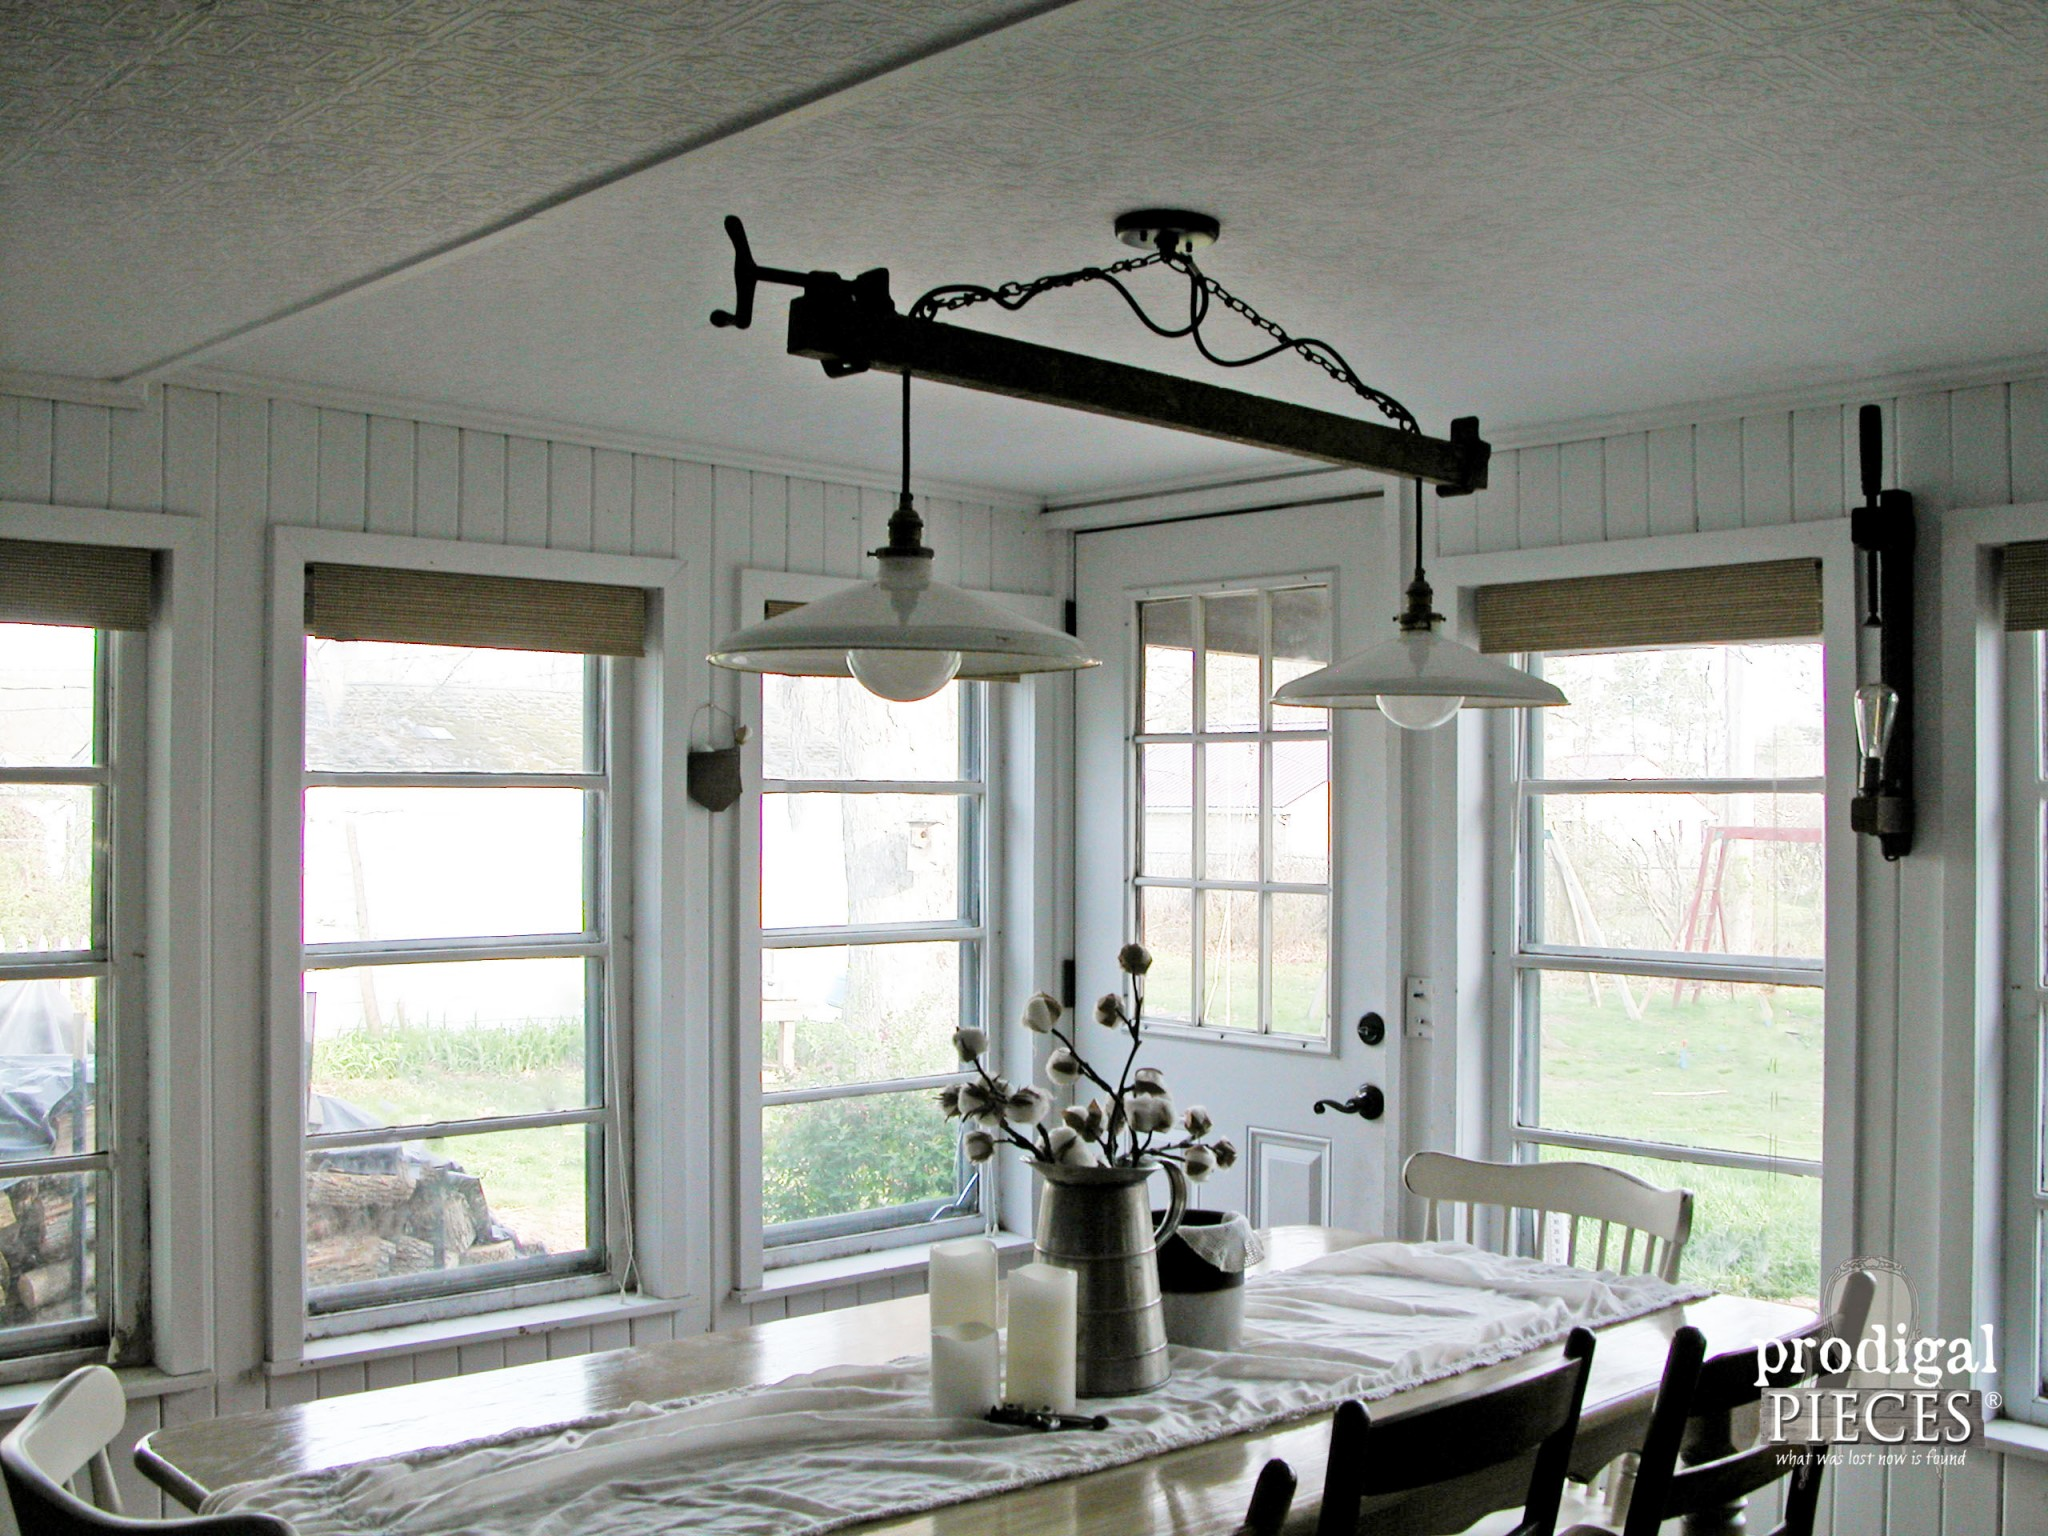 Reclaimed and Repurposed Farmhouse Lighting by Prodigal Pieces | www.prodigalpieces.com